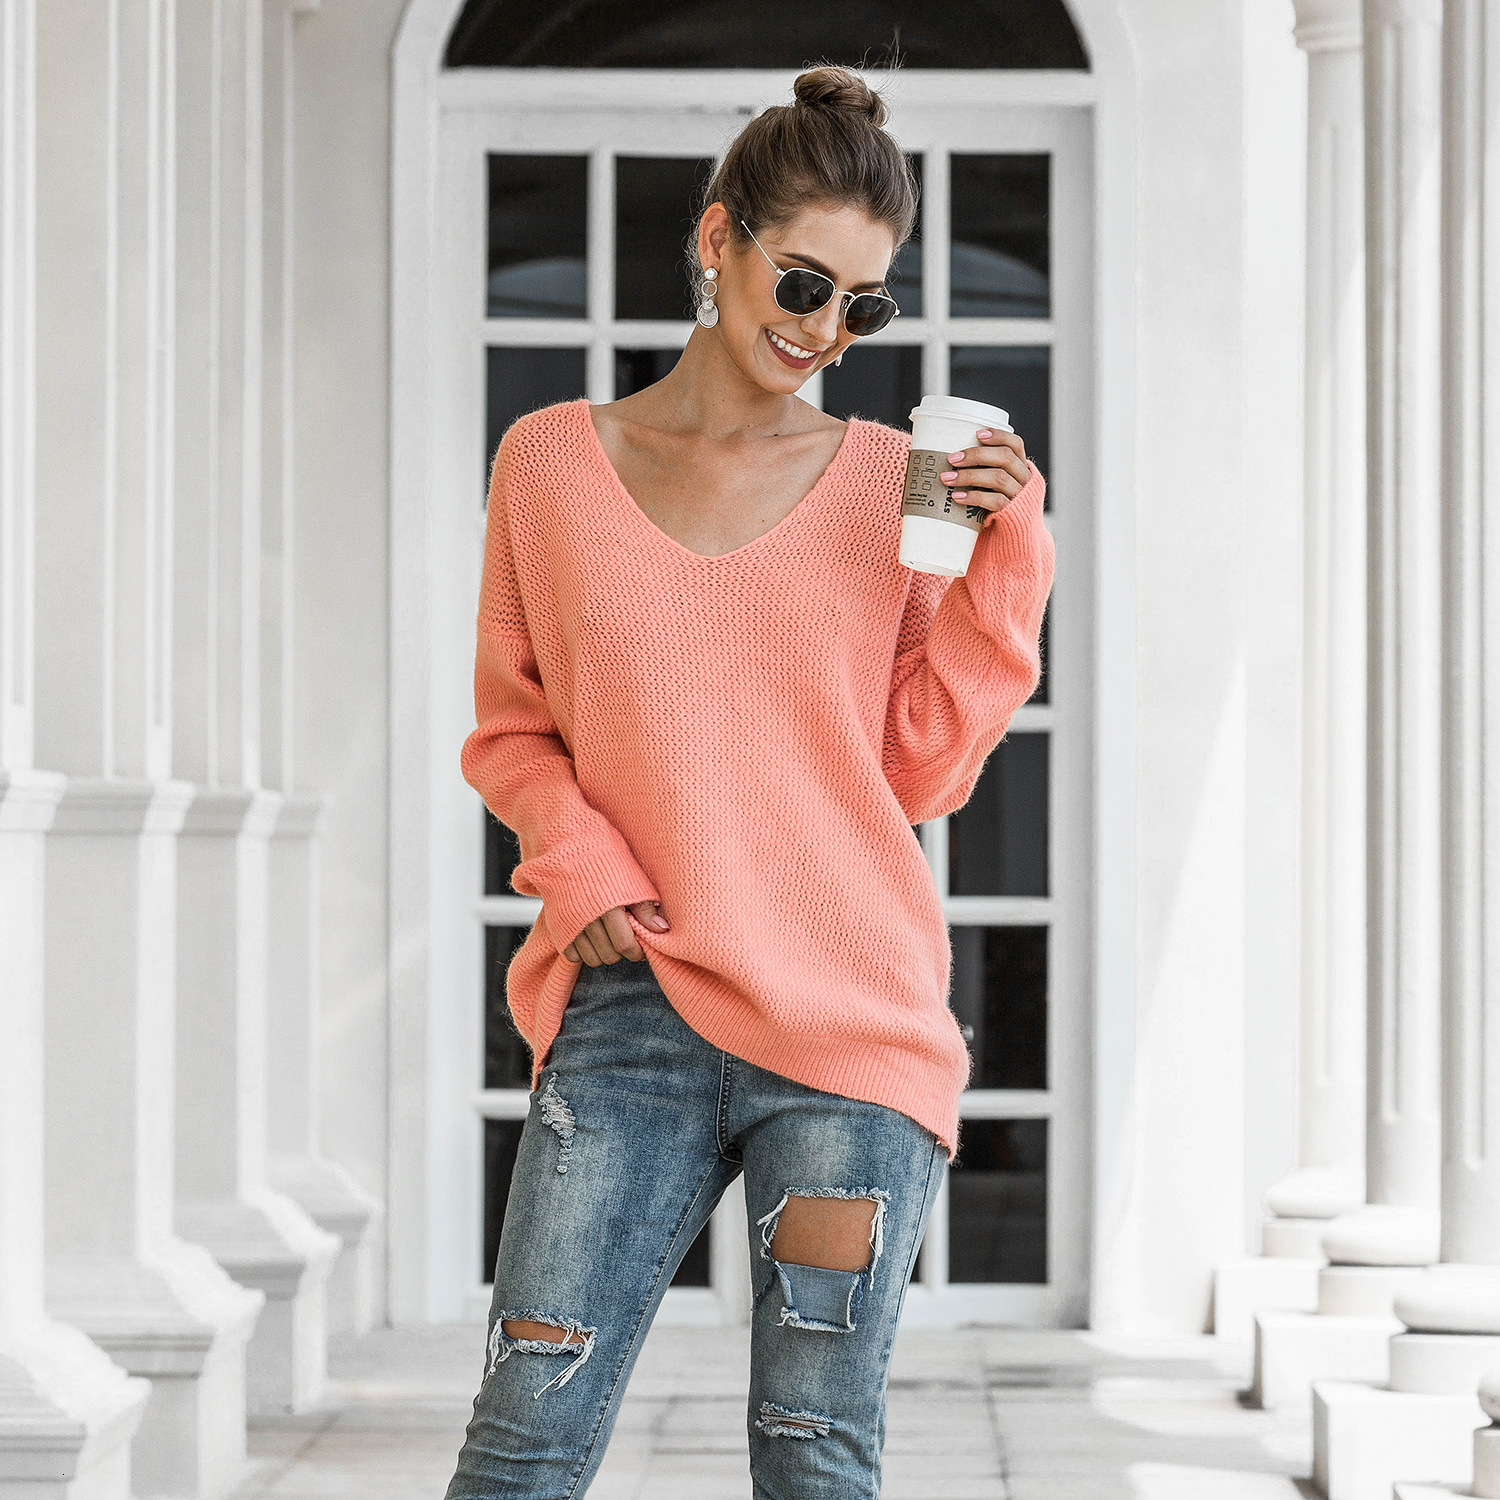 New Autumn Winter Warm Women Sweater V Neck Ladies Casual Loose Knitted Pullover Plain Color Female Jumper 2020 Mujer Invierno